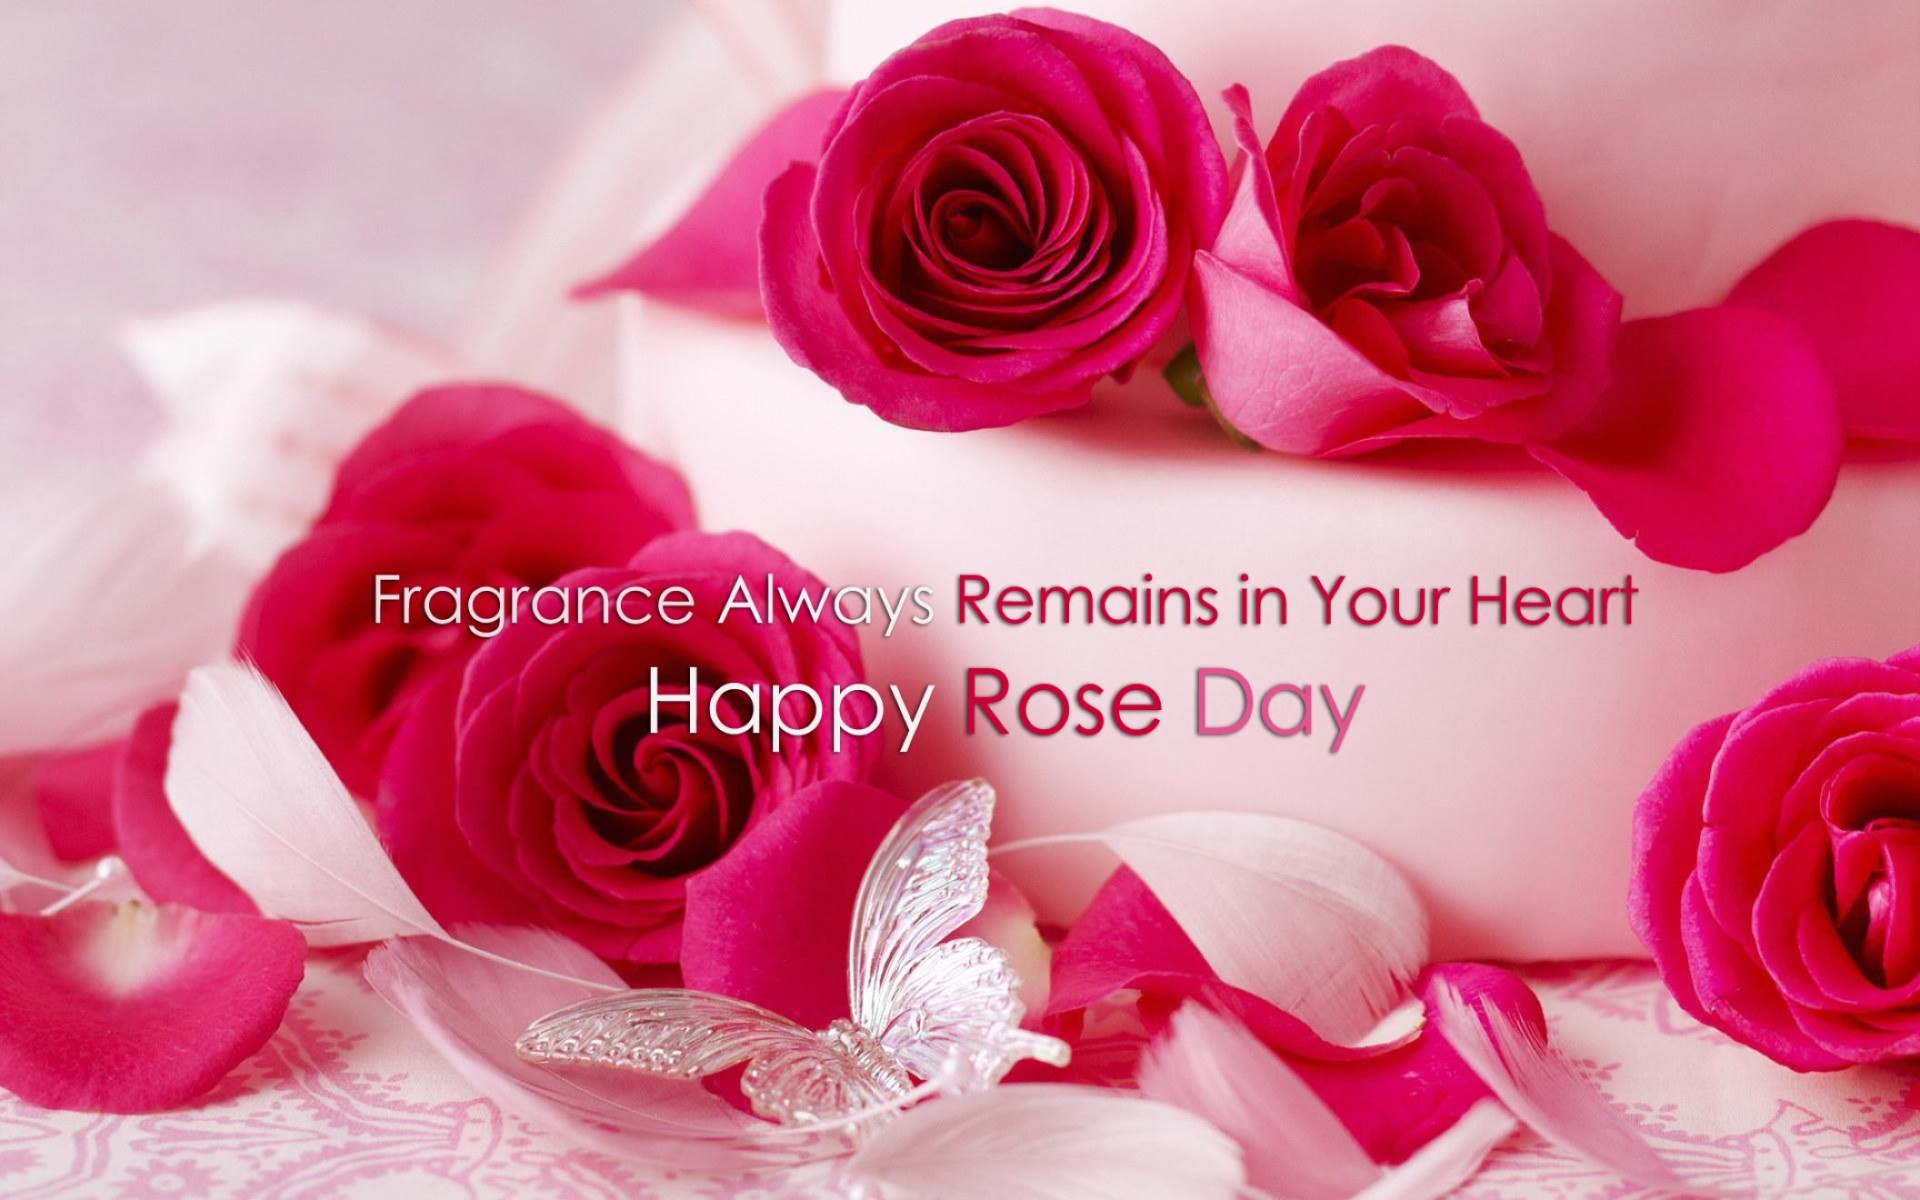 Happy Rose Day 2016 Red Rose With Love Quotes Wallpaper Flower Quotes Wallpaper